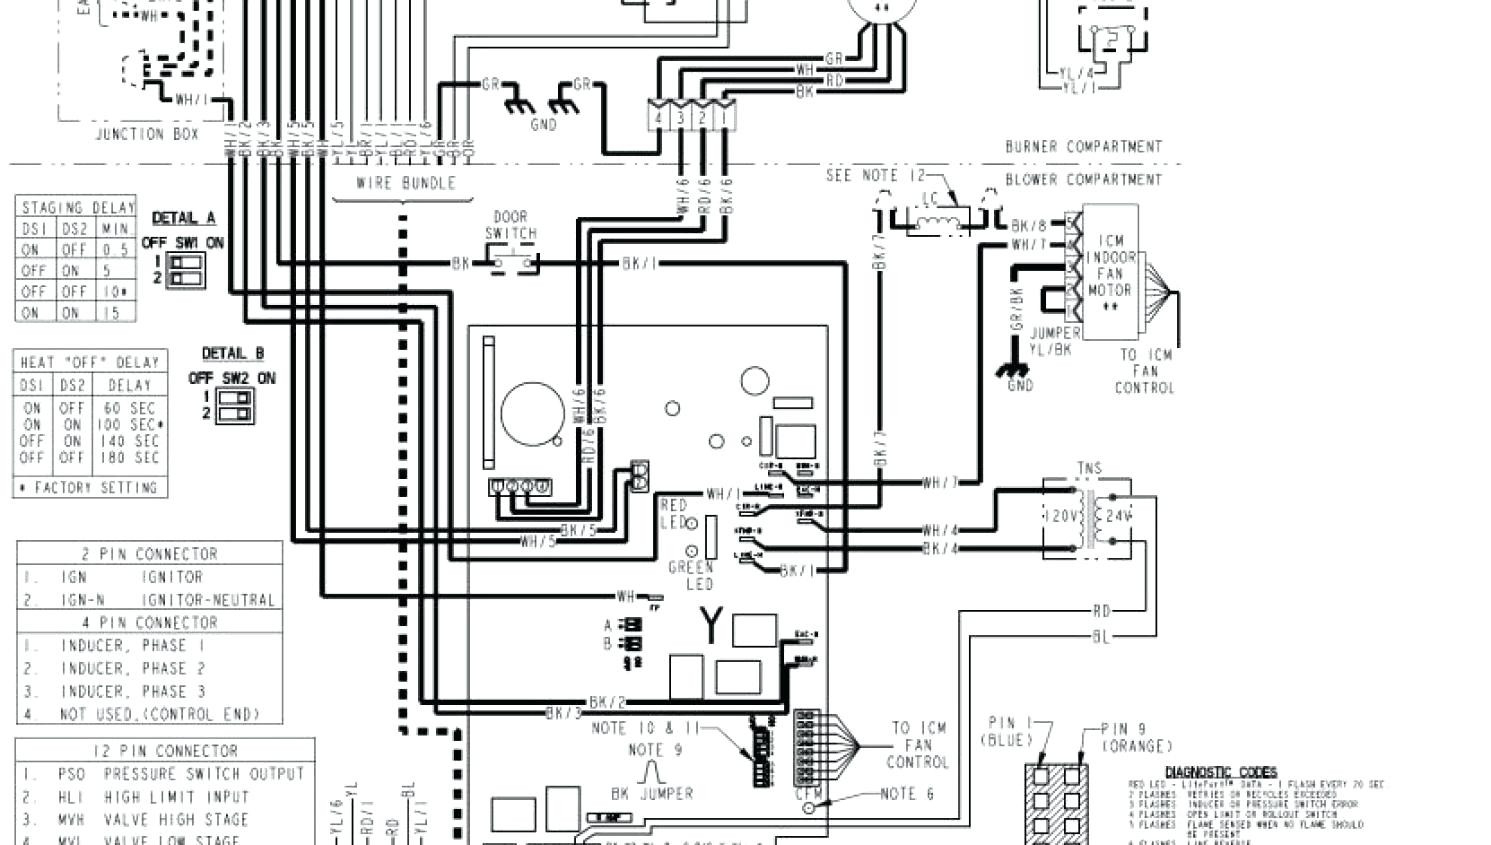 Urgg Rheem Wiring Diagrams | Wiring Diagram - Rheem Heat Pump Wiring Diagram